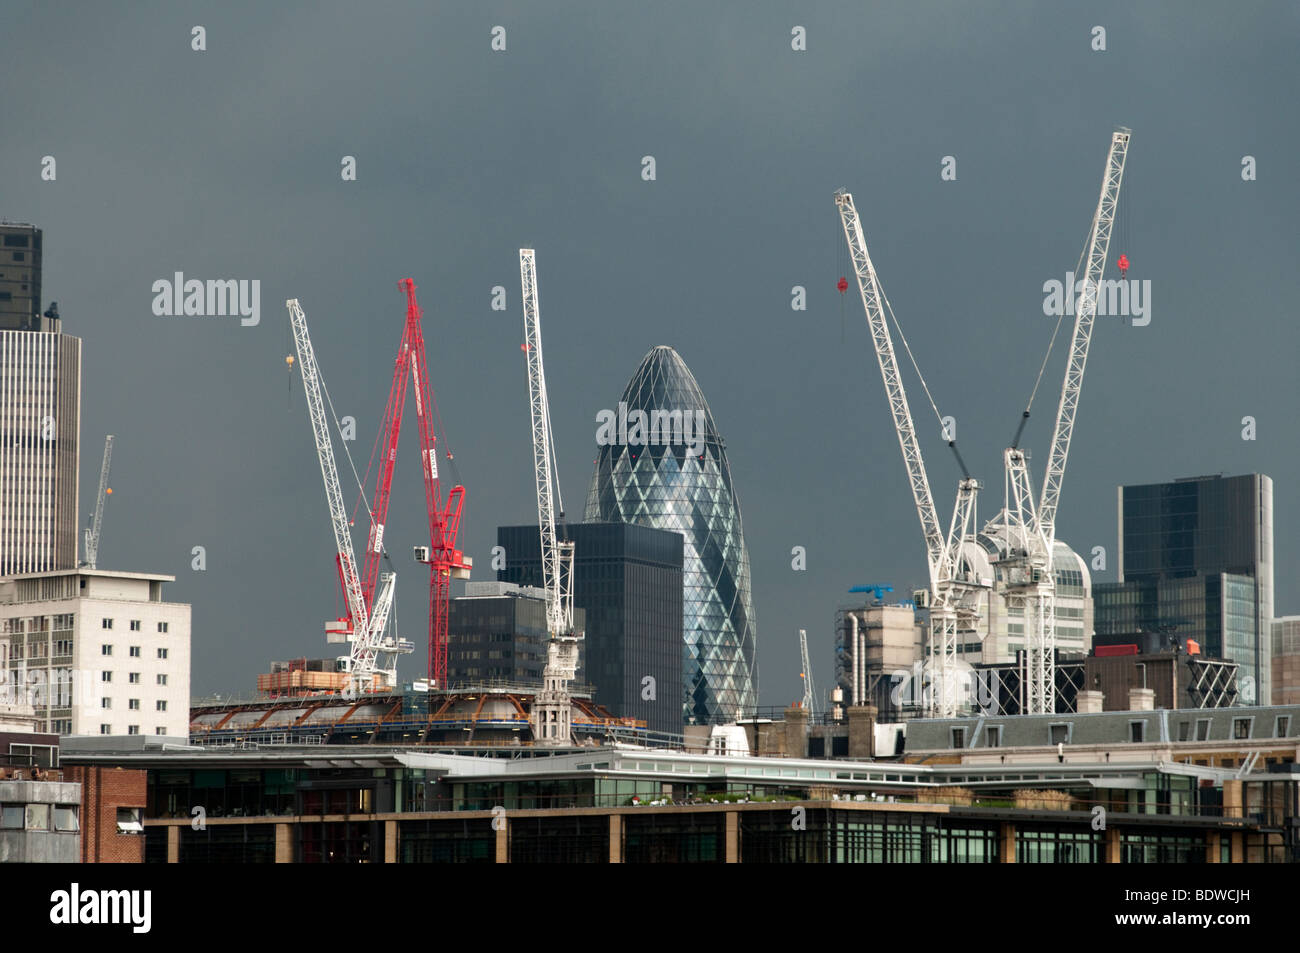 Construction cranes in the City of London on an dark overcast day, London, England, Britain, UK - Stock Image